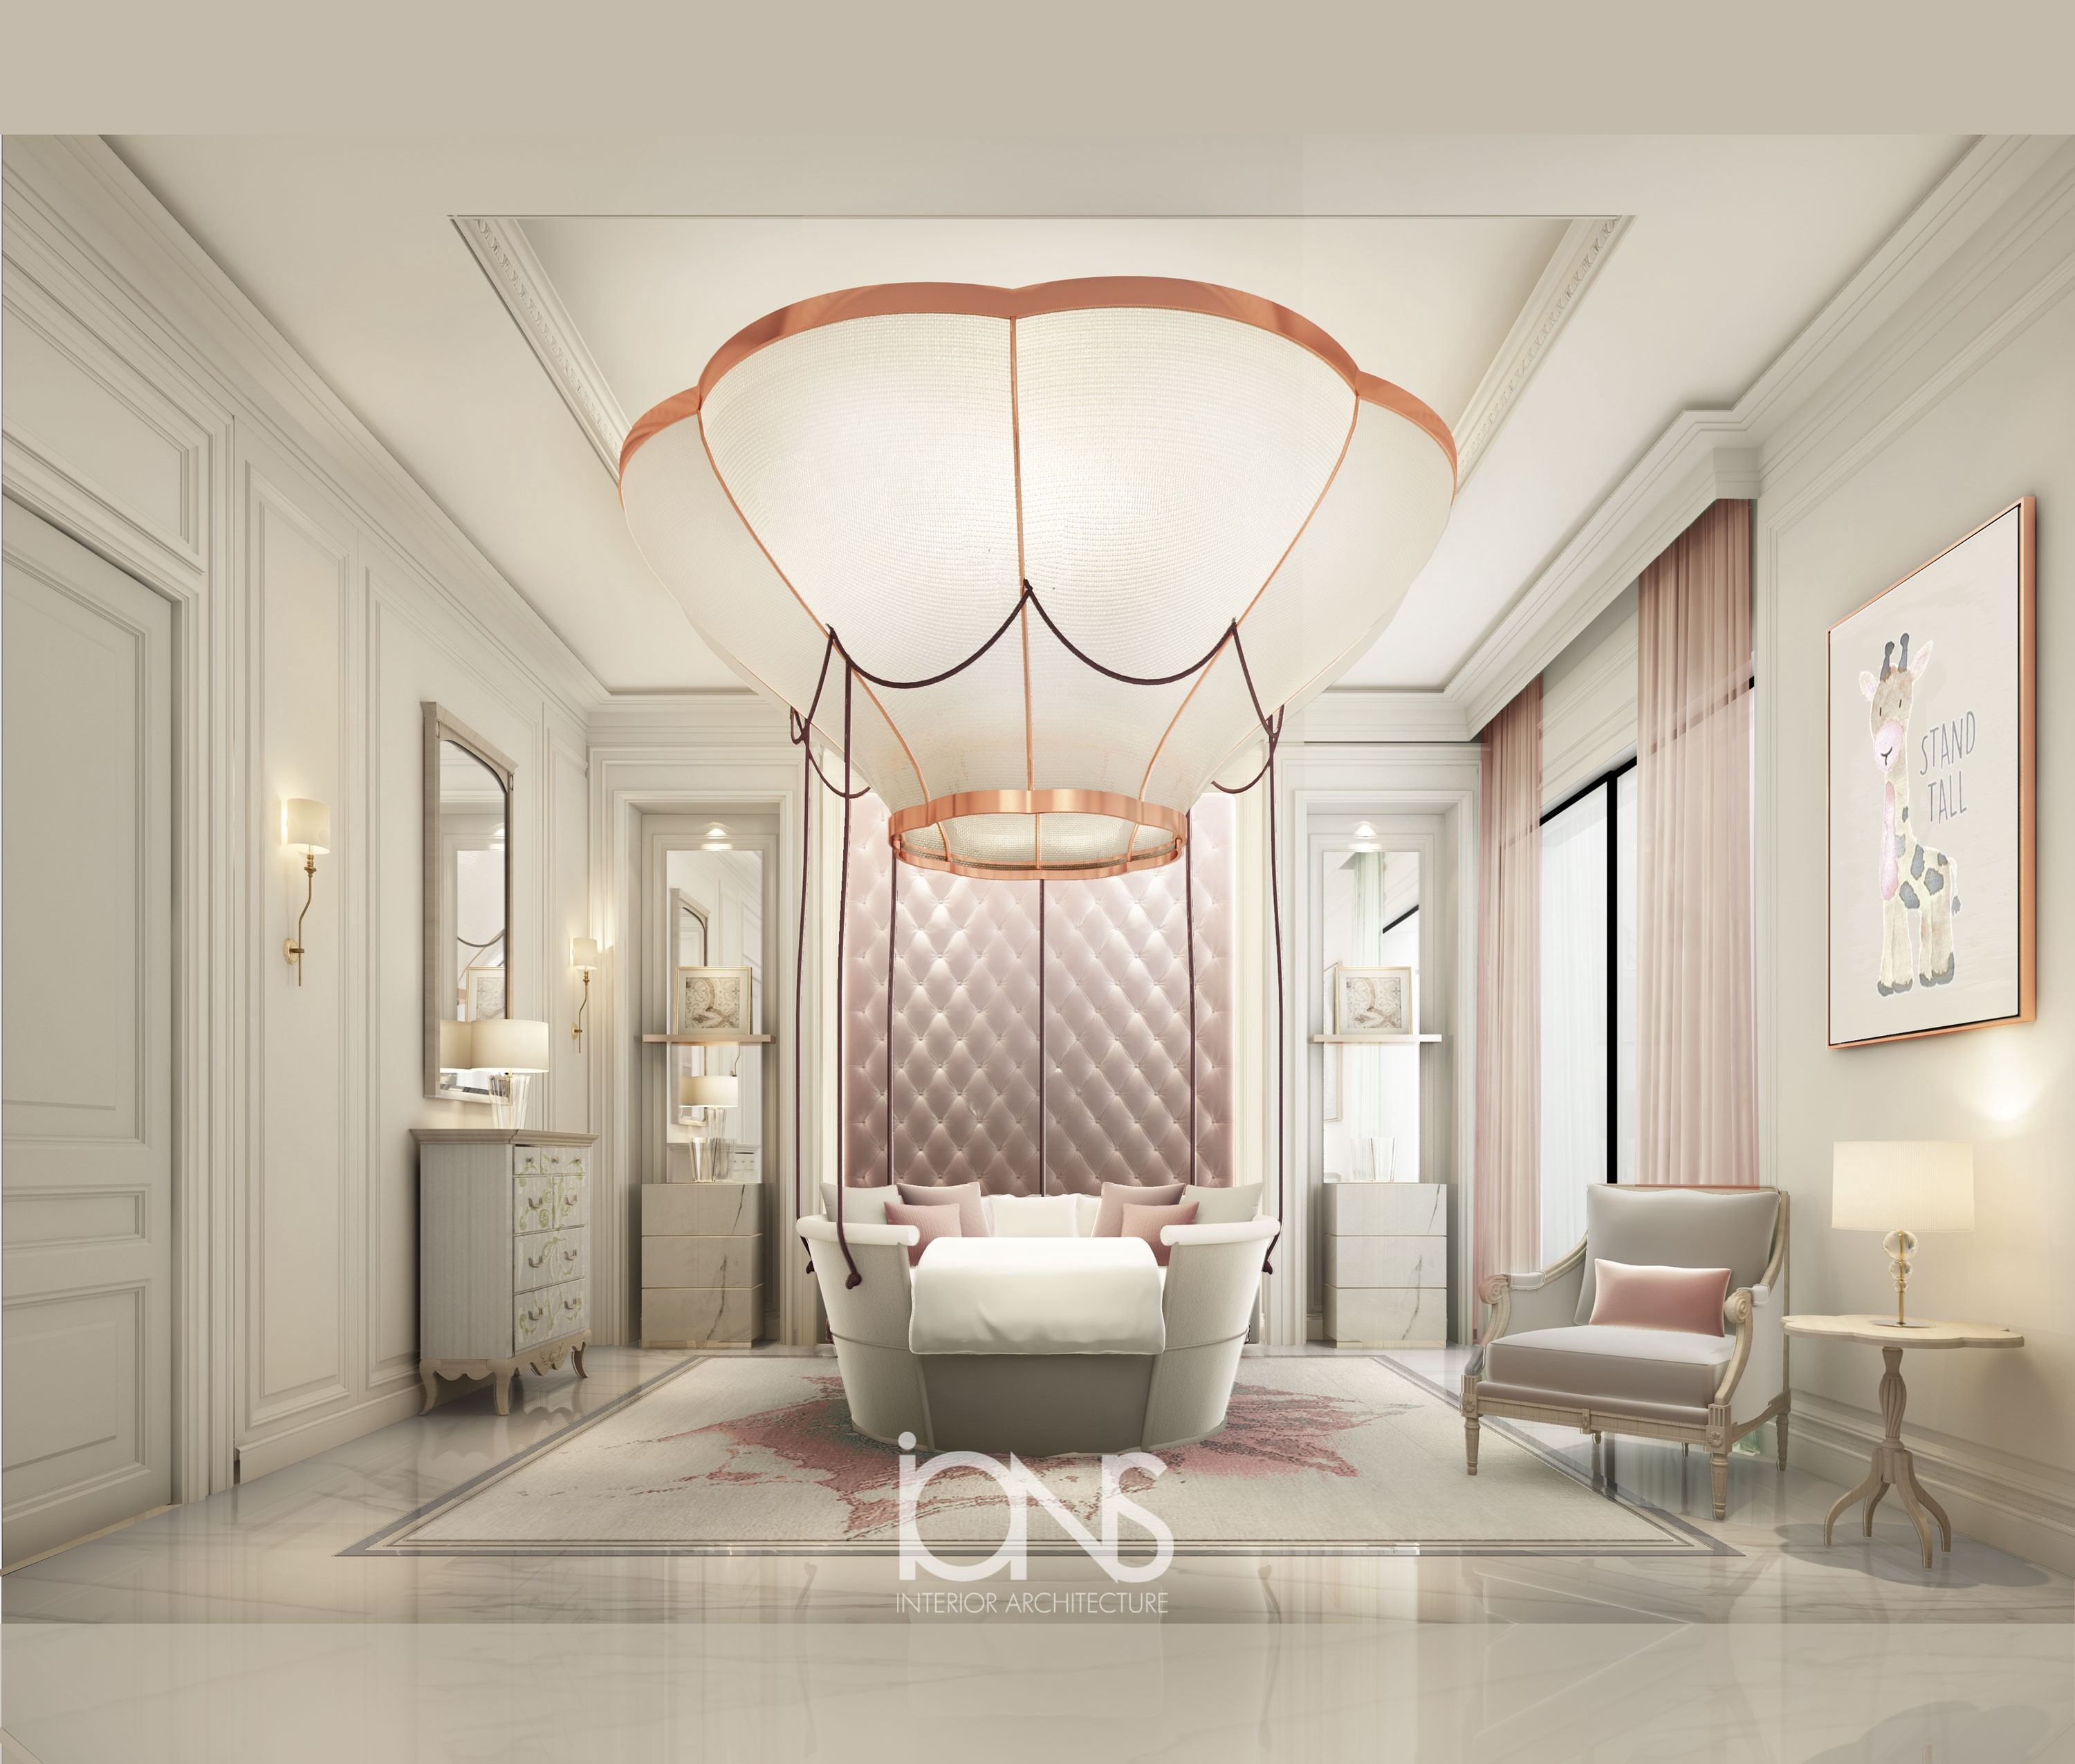 Ions Interior Design Dubai villa interior design — bedroom design ideas for young girls